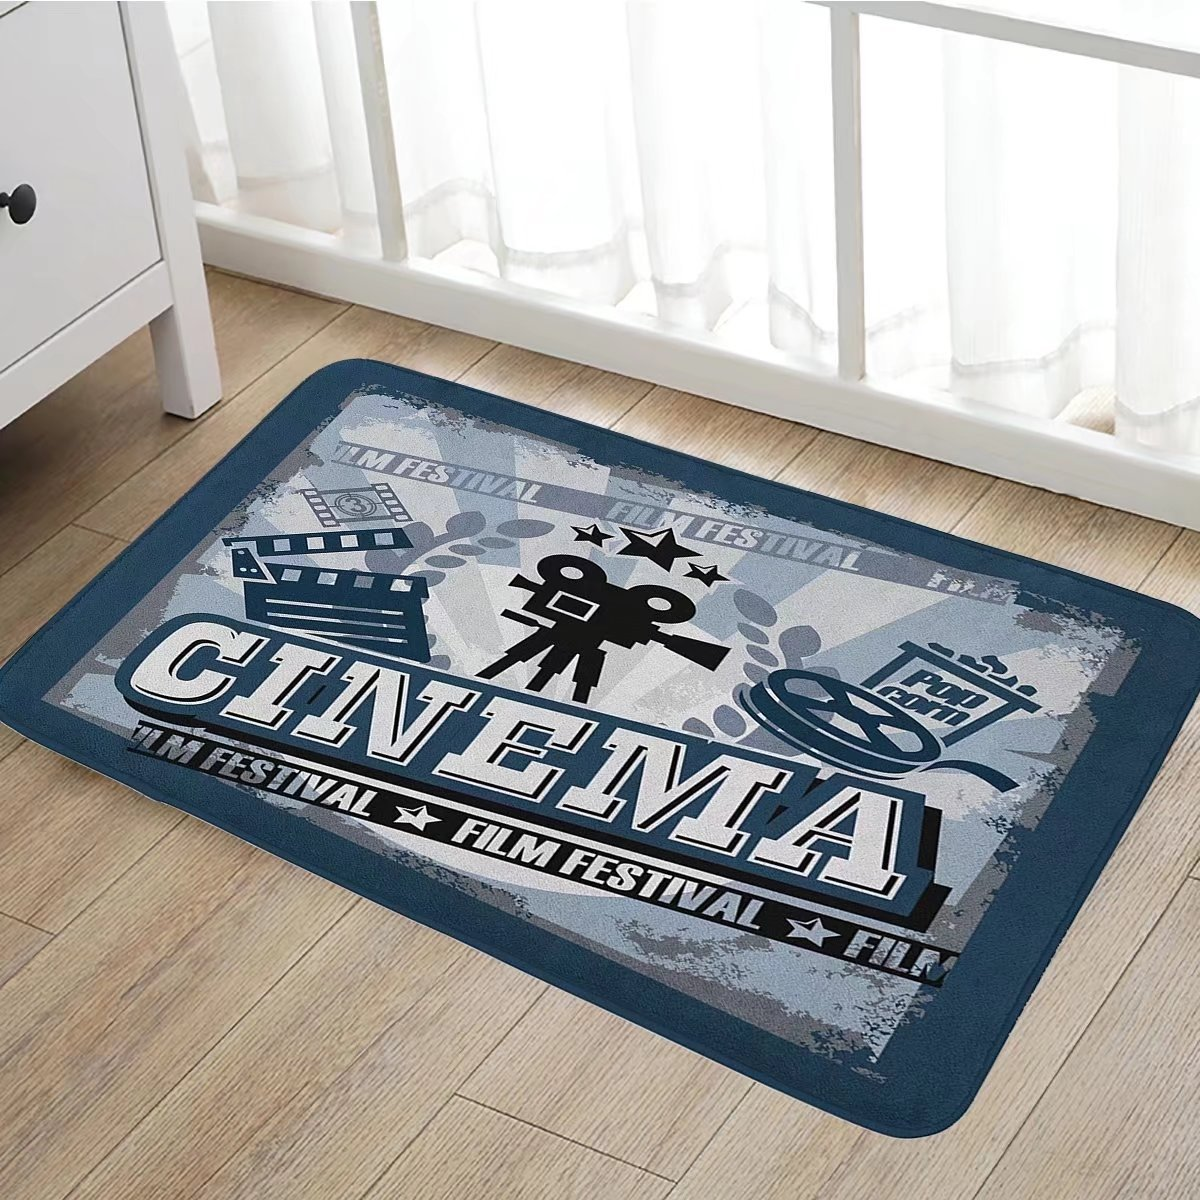 Movie Theater Bath Mat non slip Vintage Cinema Poster Design with Grunge Effect and Old Fashioned Icons Customize door mats for home Mat20''x31'' Blue Black Grey